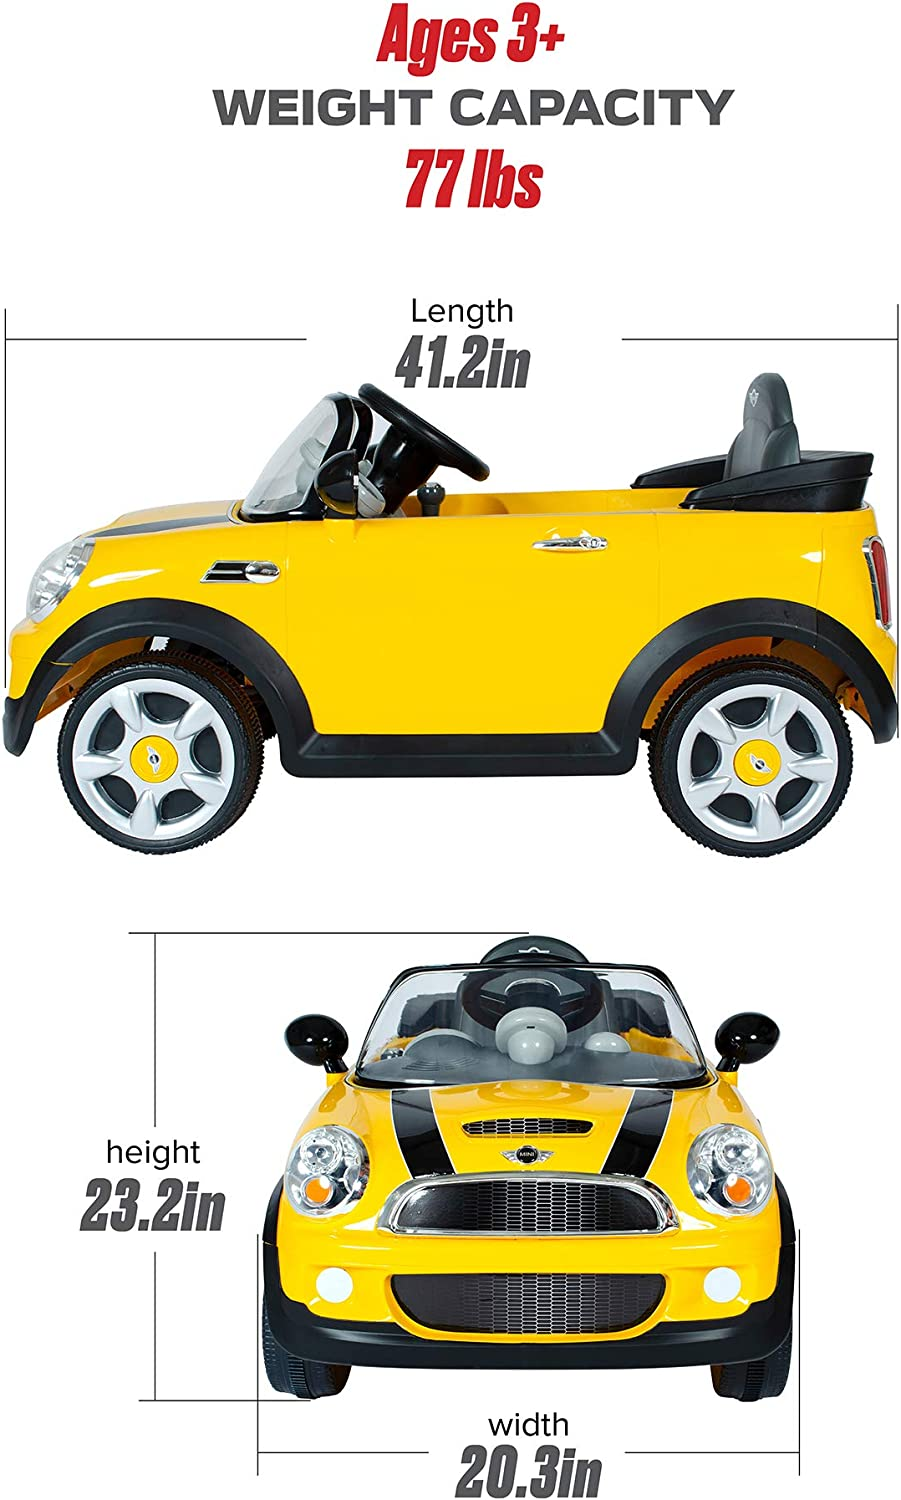 Amazon Com Rollplay 6v Mini Cooper Kid S Ride On Car For Boys Girls Ages 3 Up Battery Powered Ride On Toy Yellow Toys Games